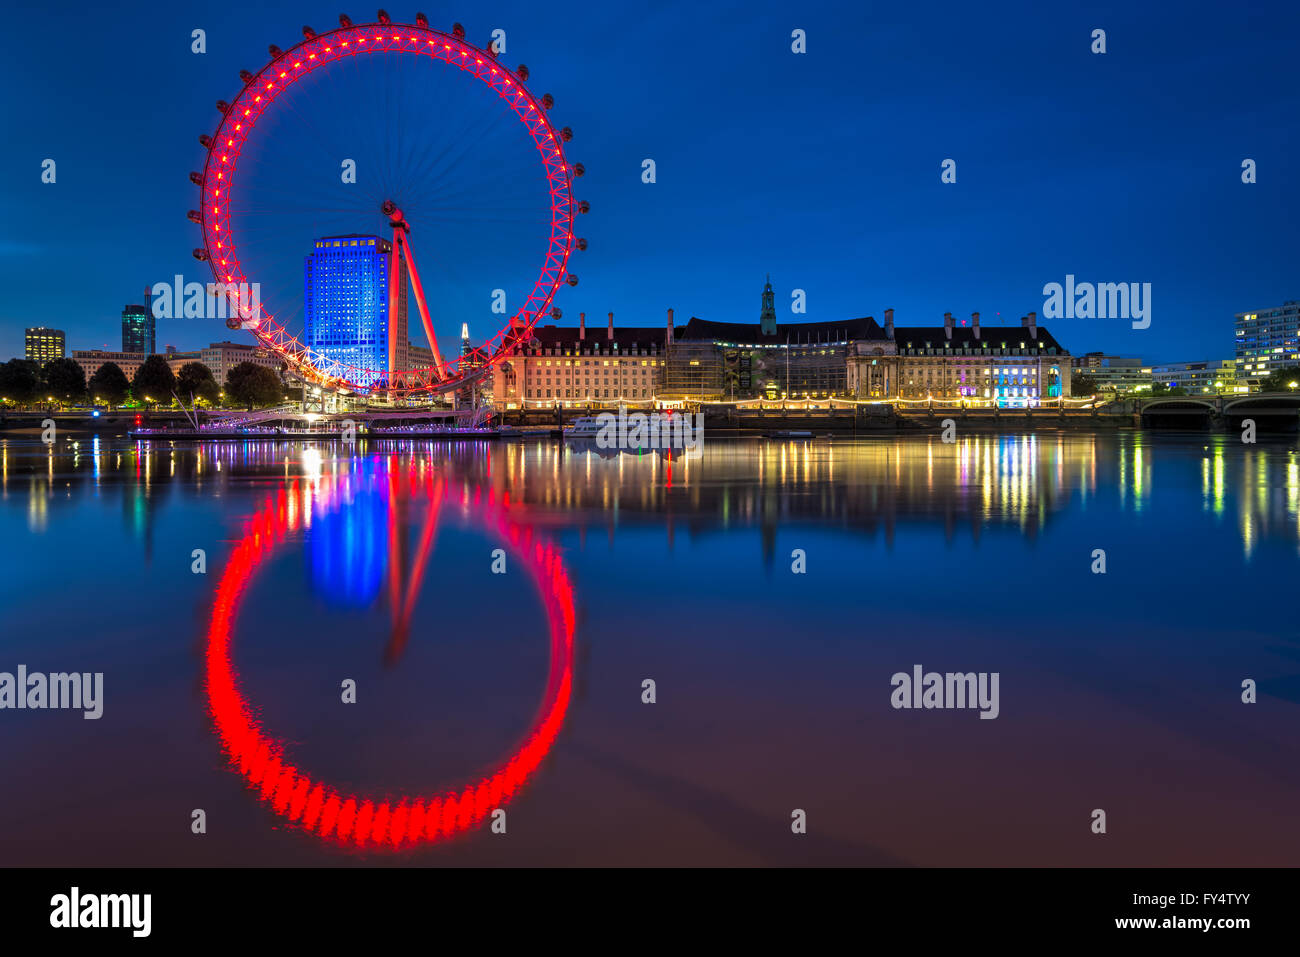 The London Eye, London, United Kingdom - Stock Image